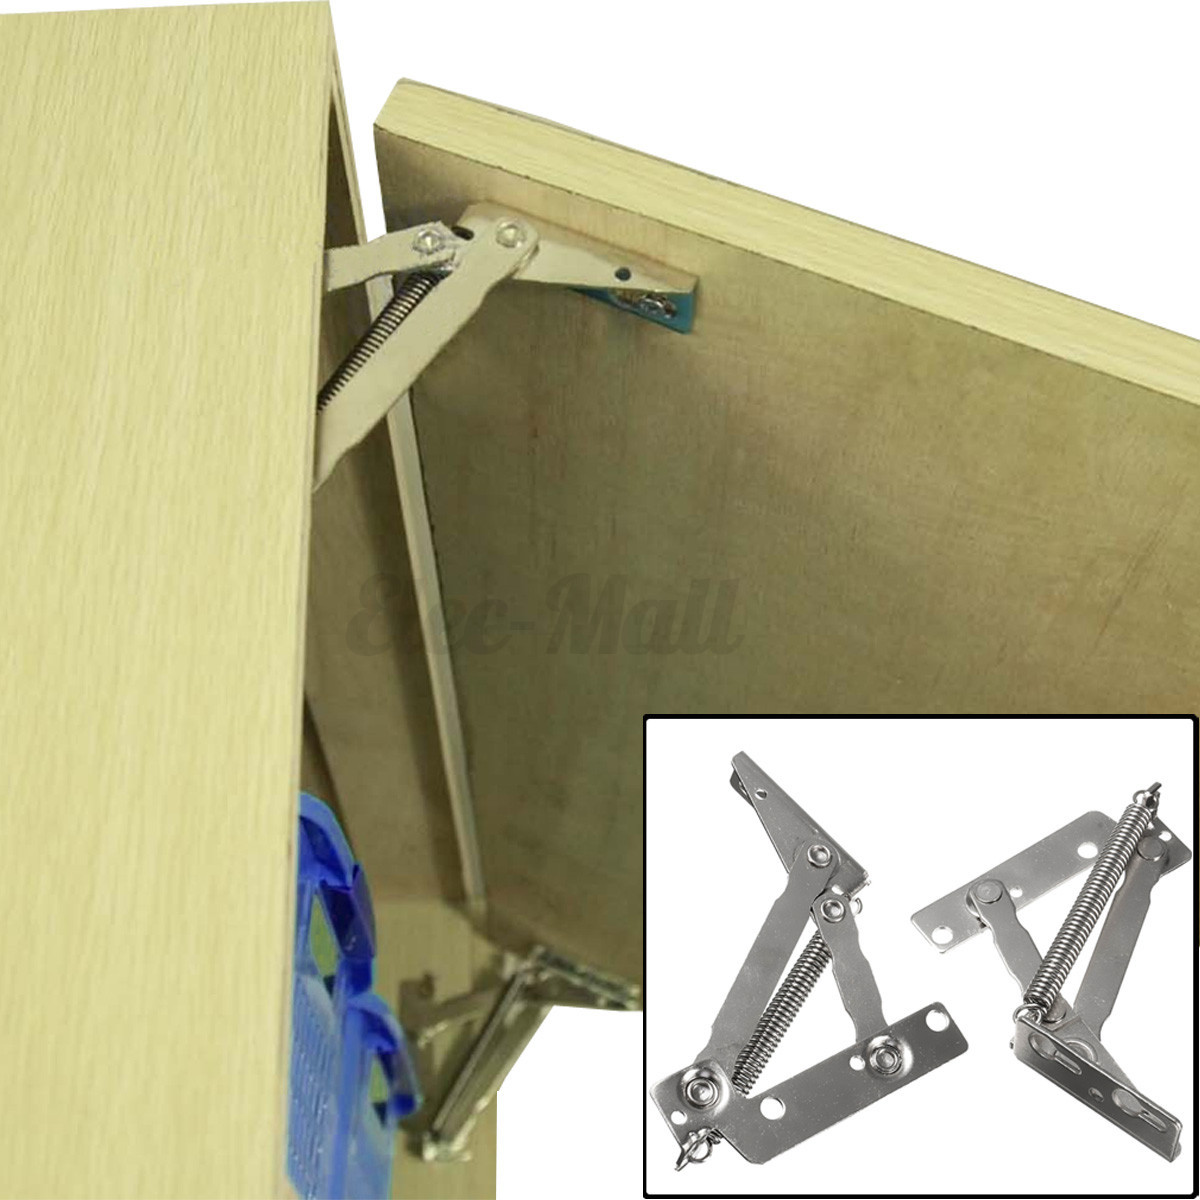 Lift Hinges For Kitchen Cabinets: 2x Cabinet Cupboard Closet Door Lift Up Stay Flap Top